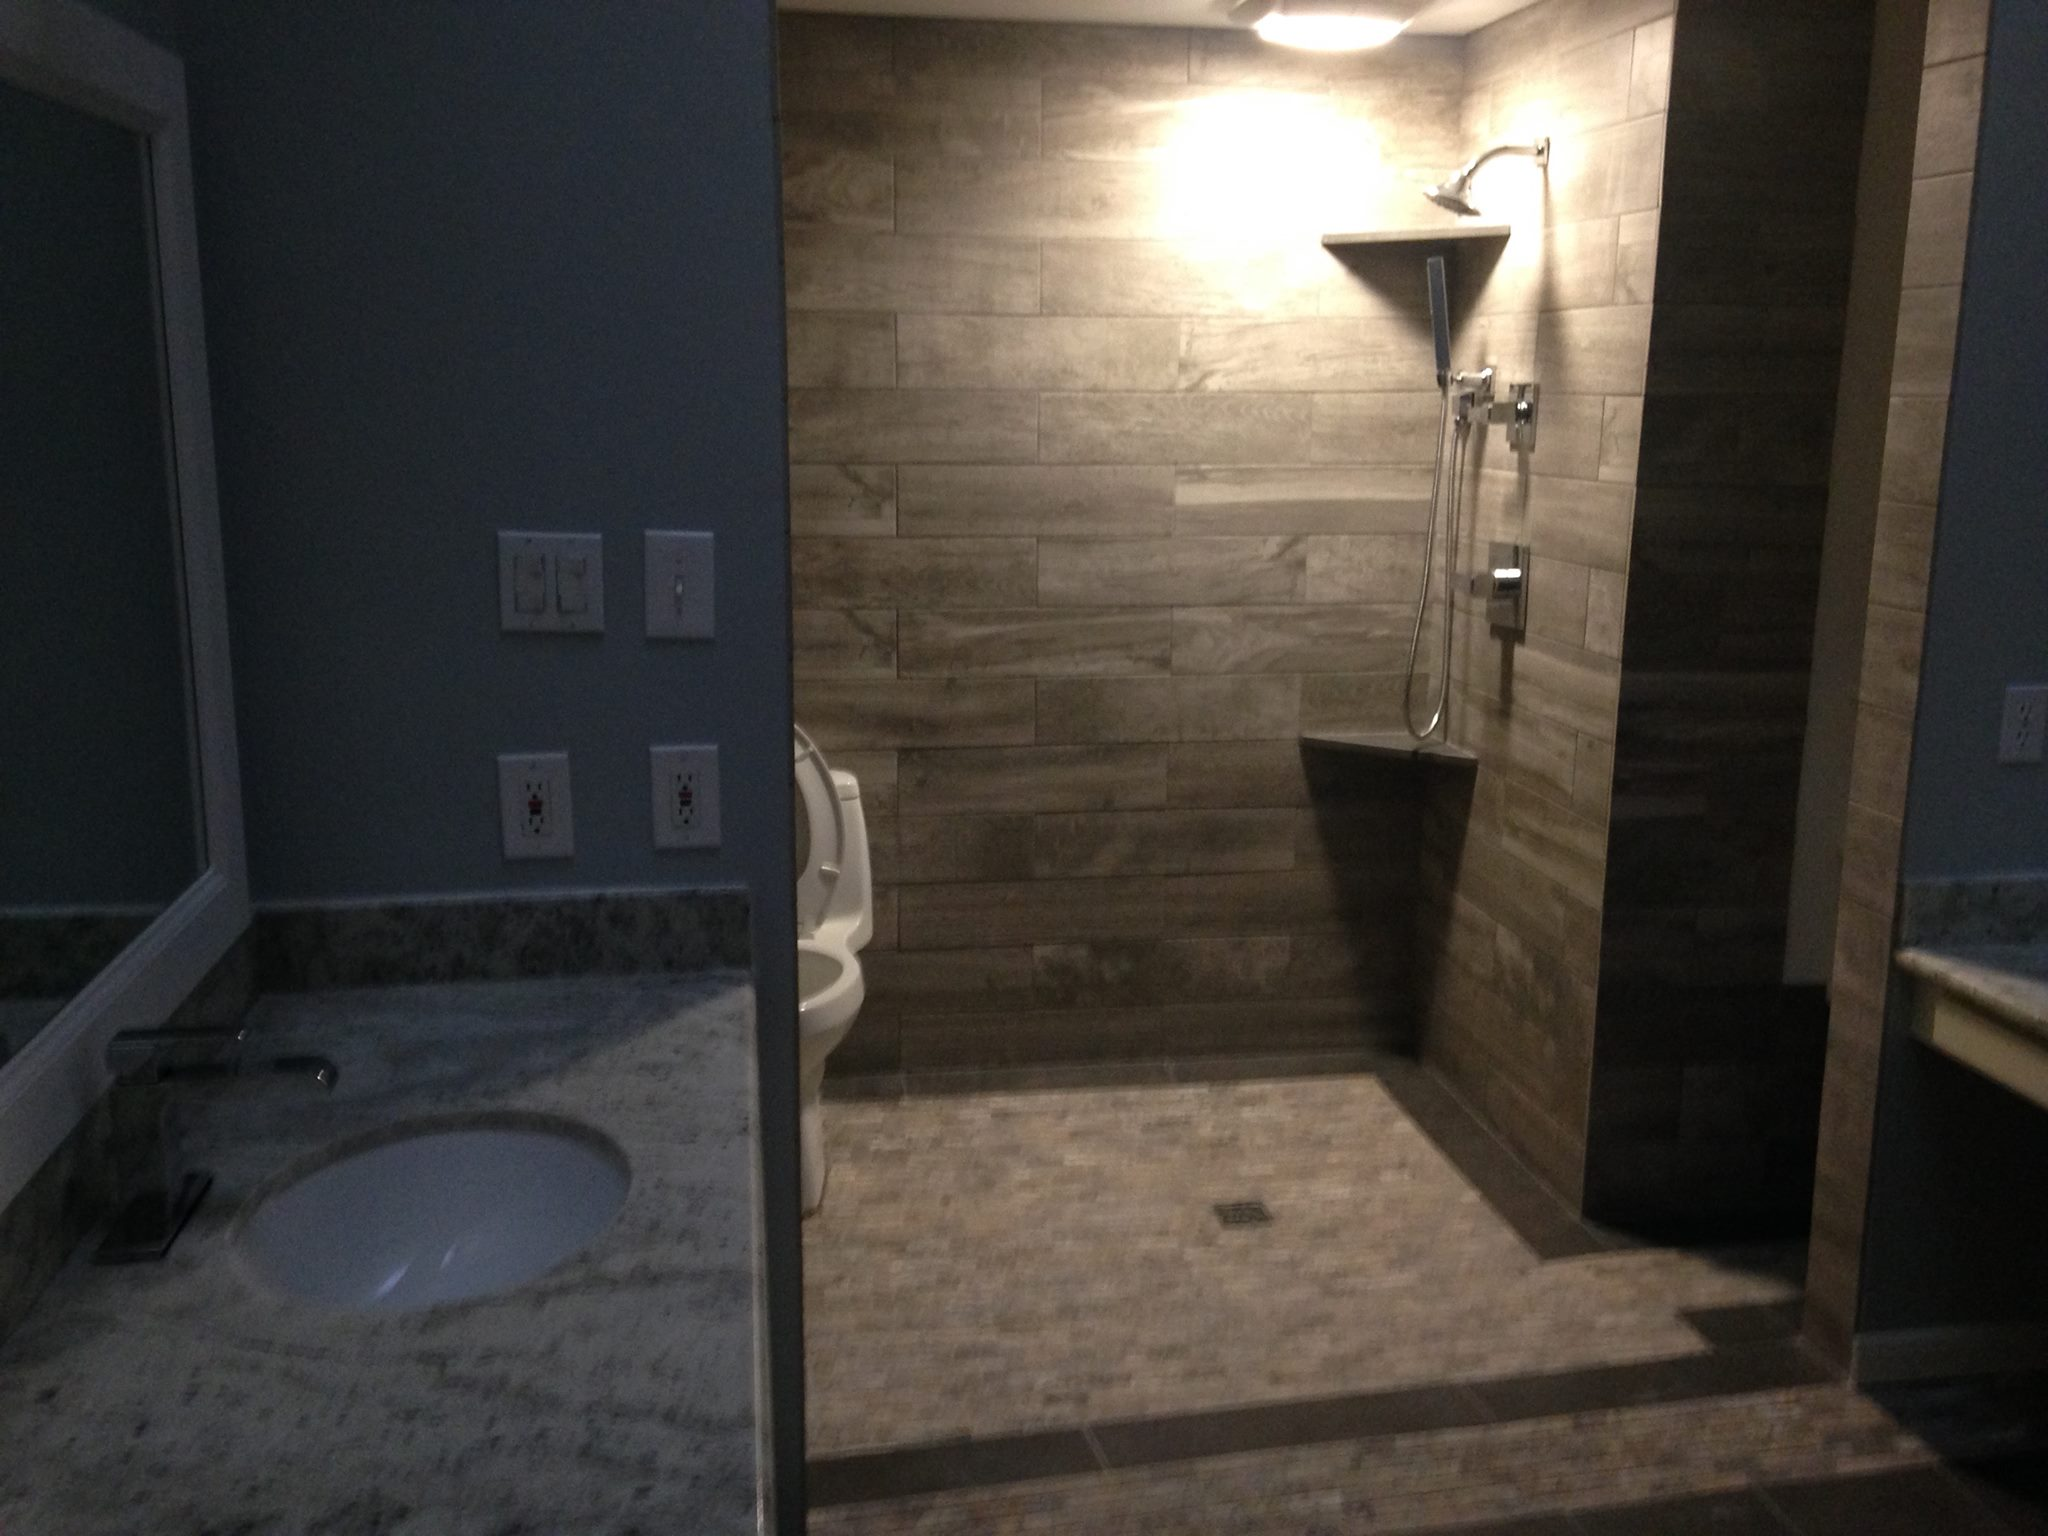 Sugar Land Bathroom Remodeling Contractor Toilet In Shower Area - Sugar land kitchen remodeling